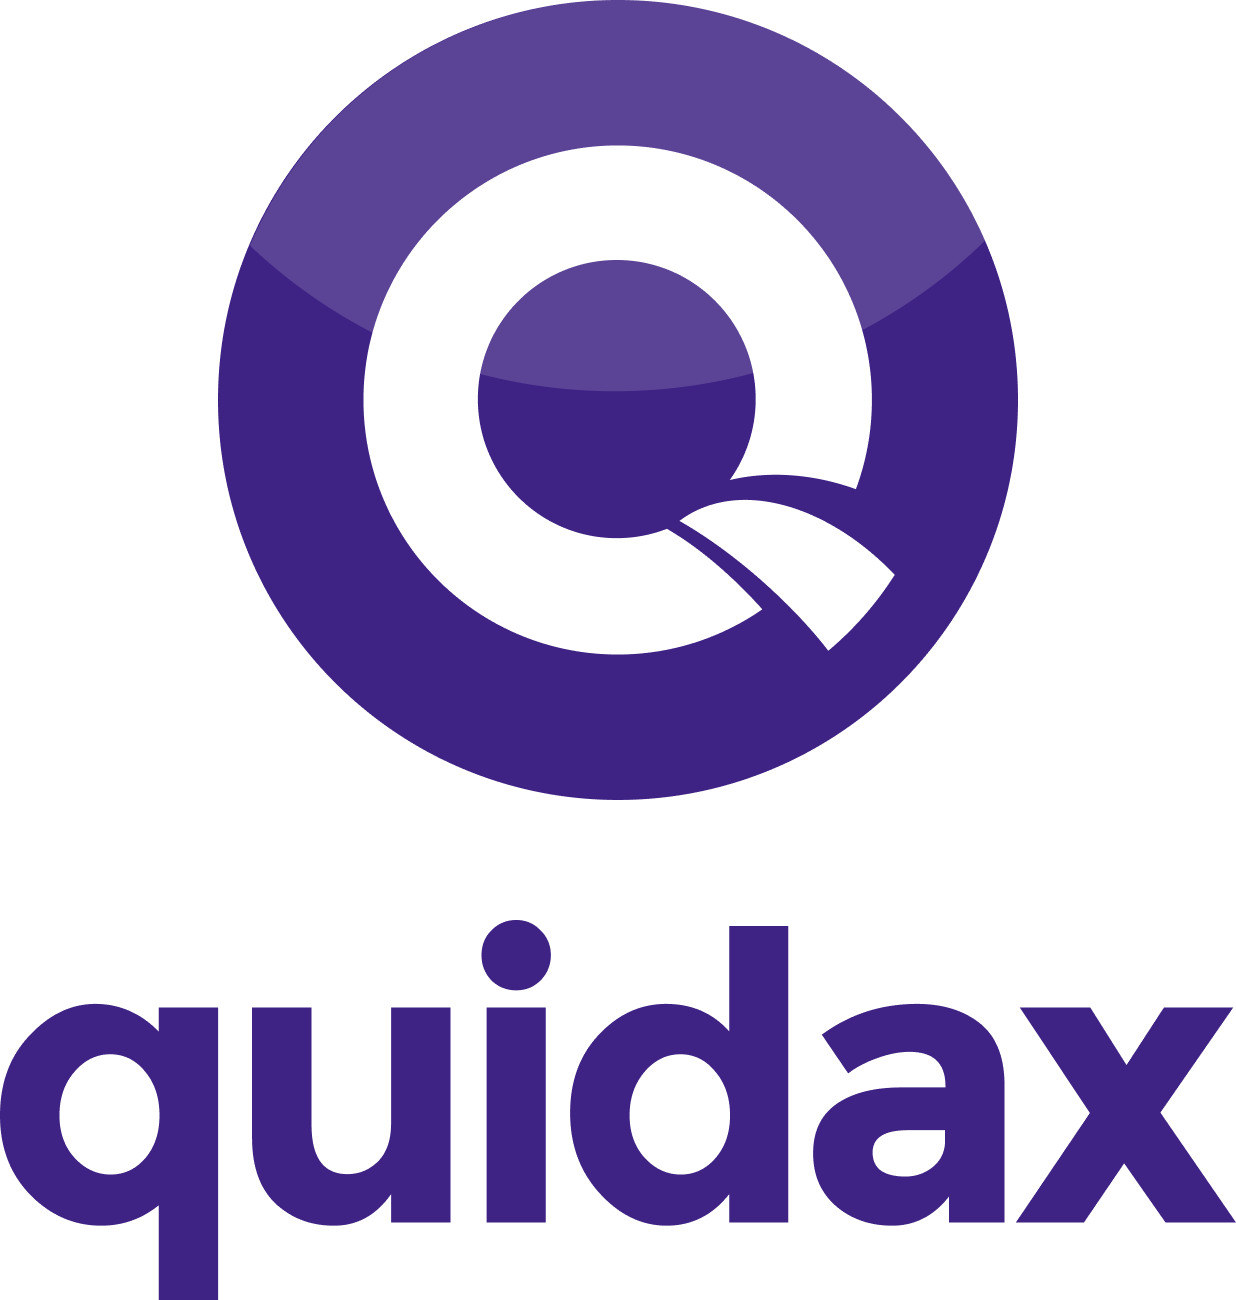 prlog.org - Quidax - Cryptocurrency Startup partners with Flutterwave